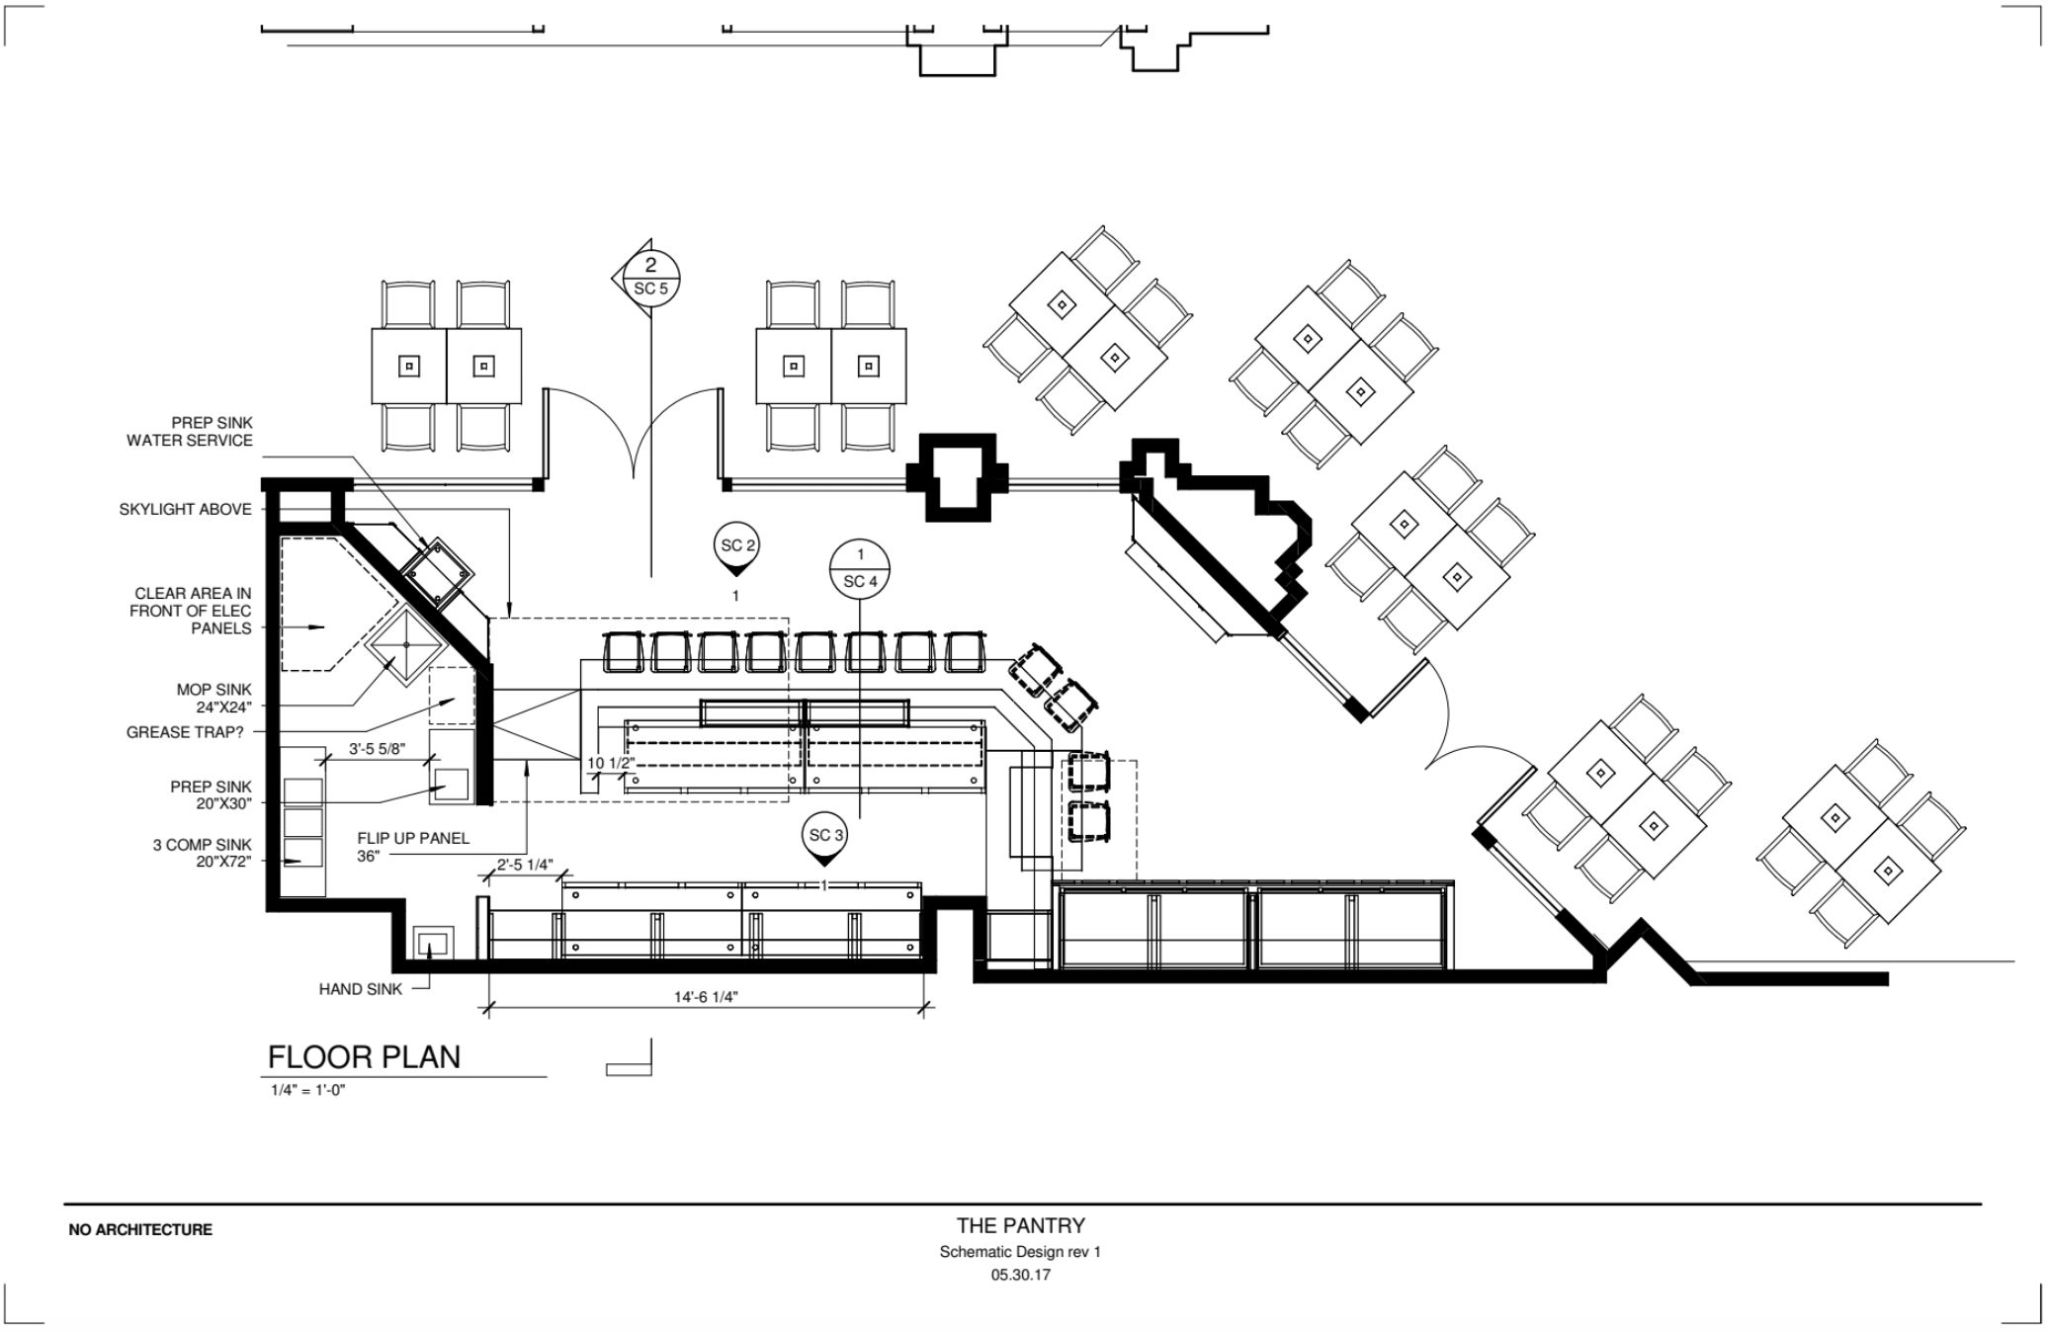 The Pantry Atlanta - Site Plan